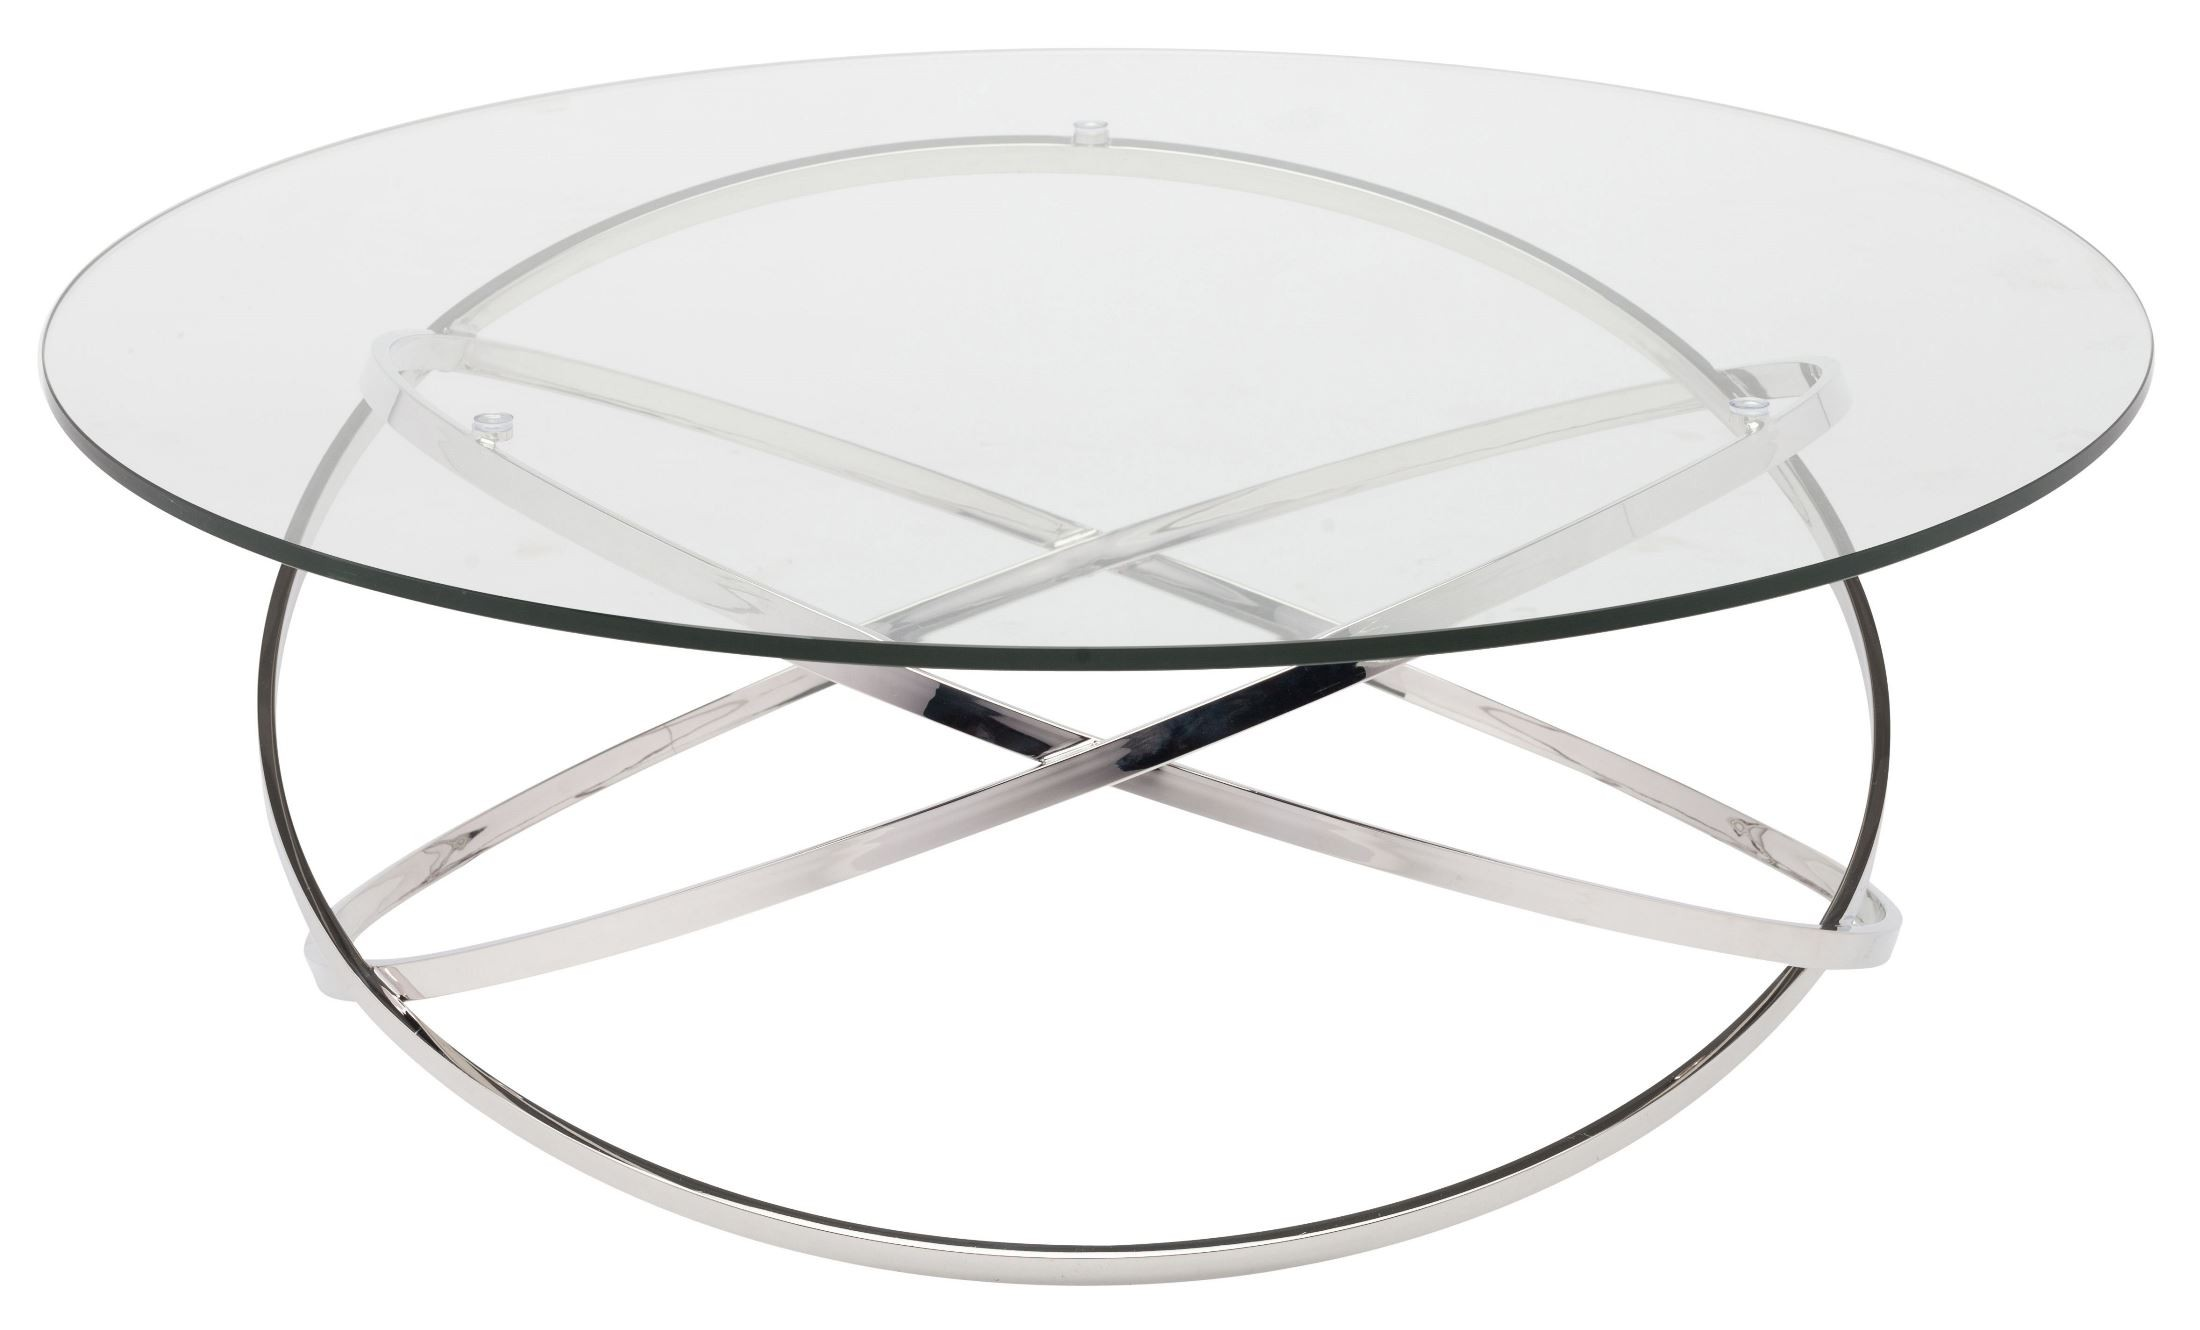 corel silver clear glass coffee table from nuevo coleman furniture. Black Bedroom Furniture Sets. Home Design Ideas